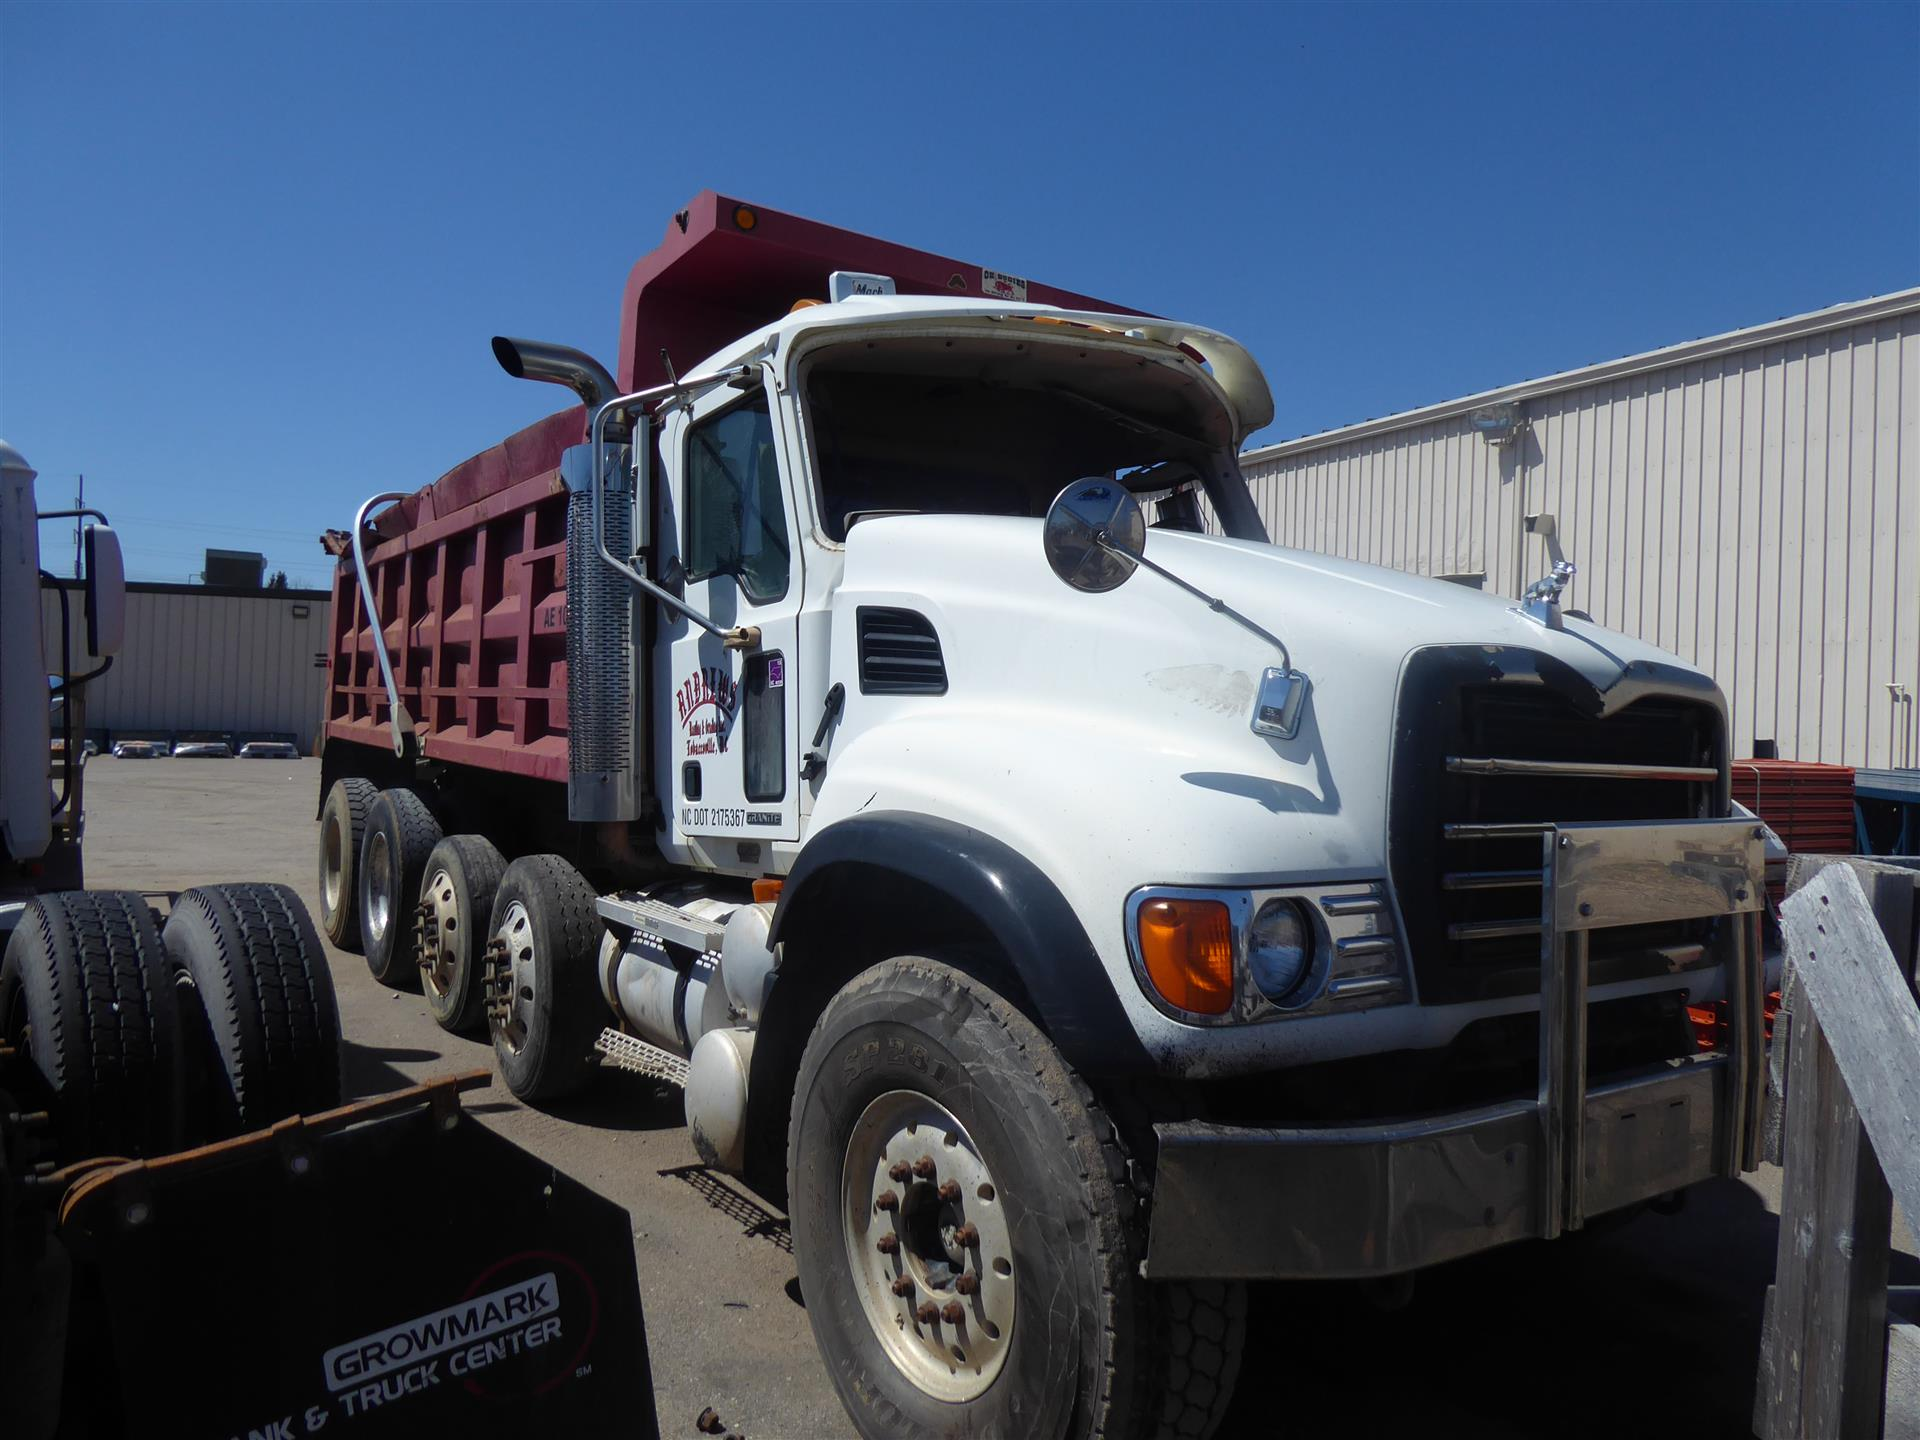 2006 Mack cv713 for sale-59199527